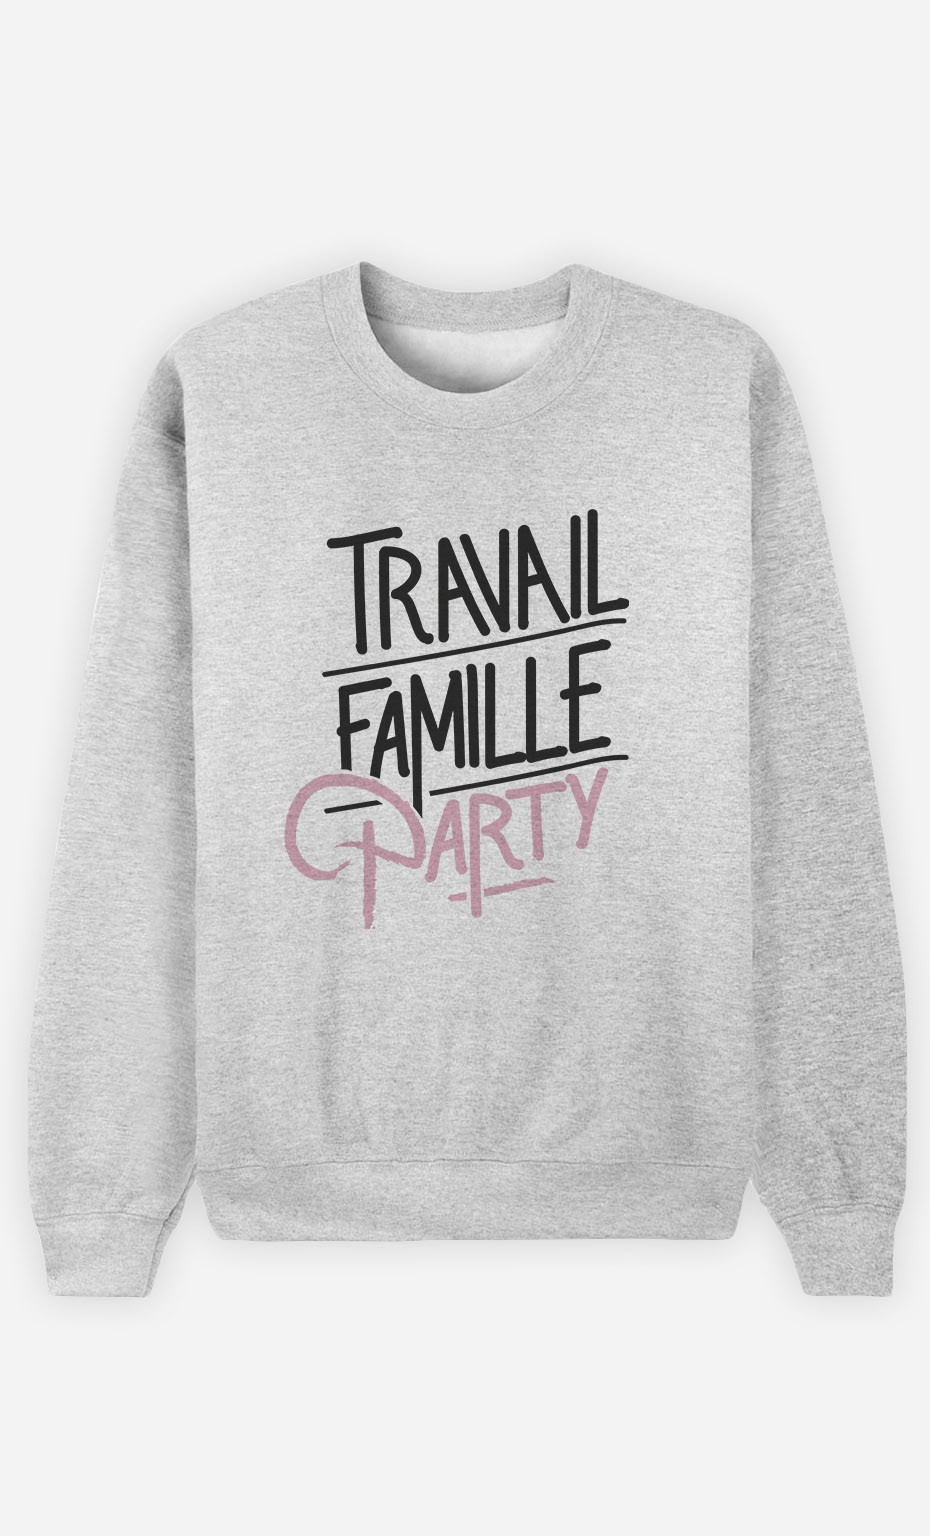 Sweat Homme Travail Famille Party